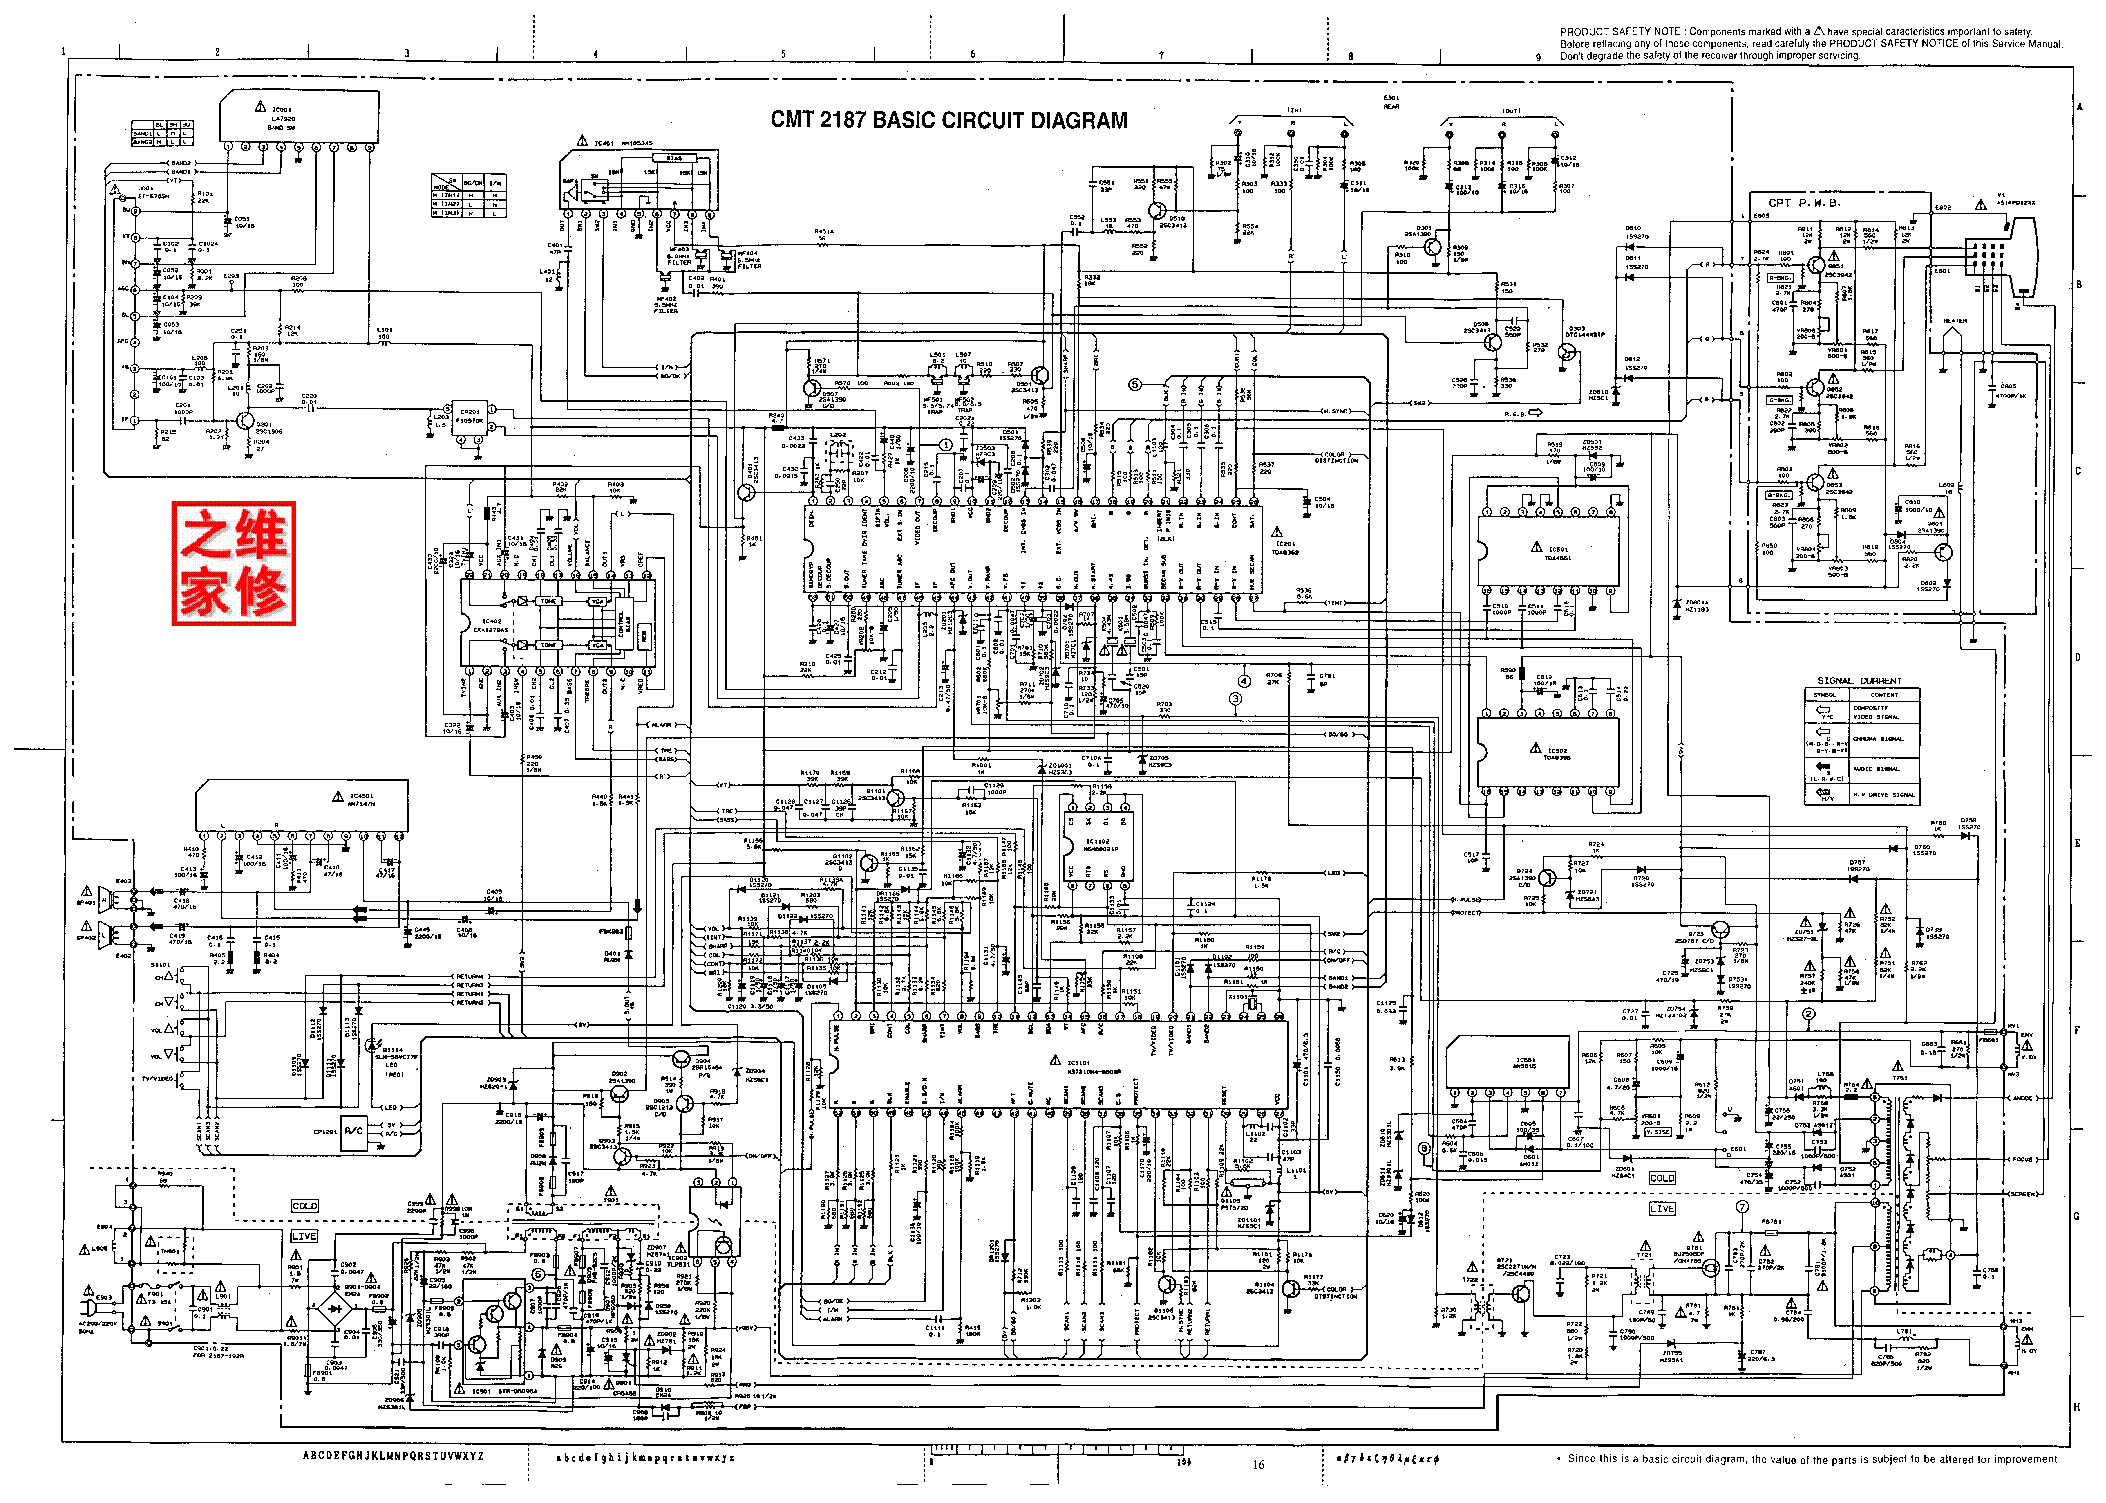 2002 toyota tundra trailer wiring harness free download chinese wiring harness free download